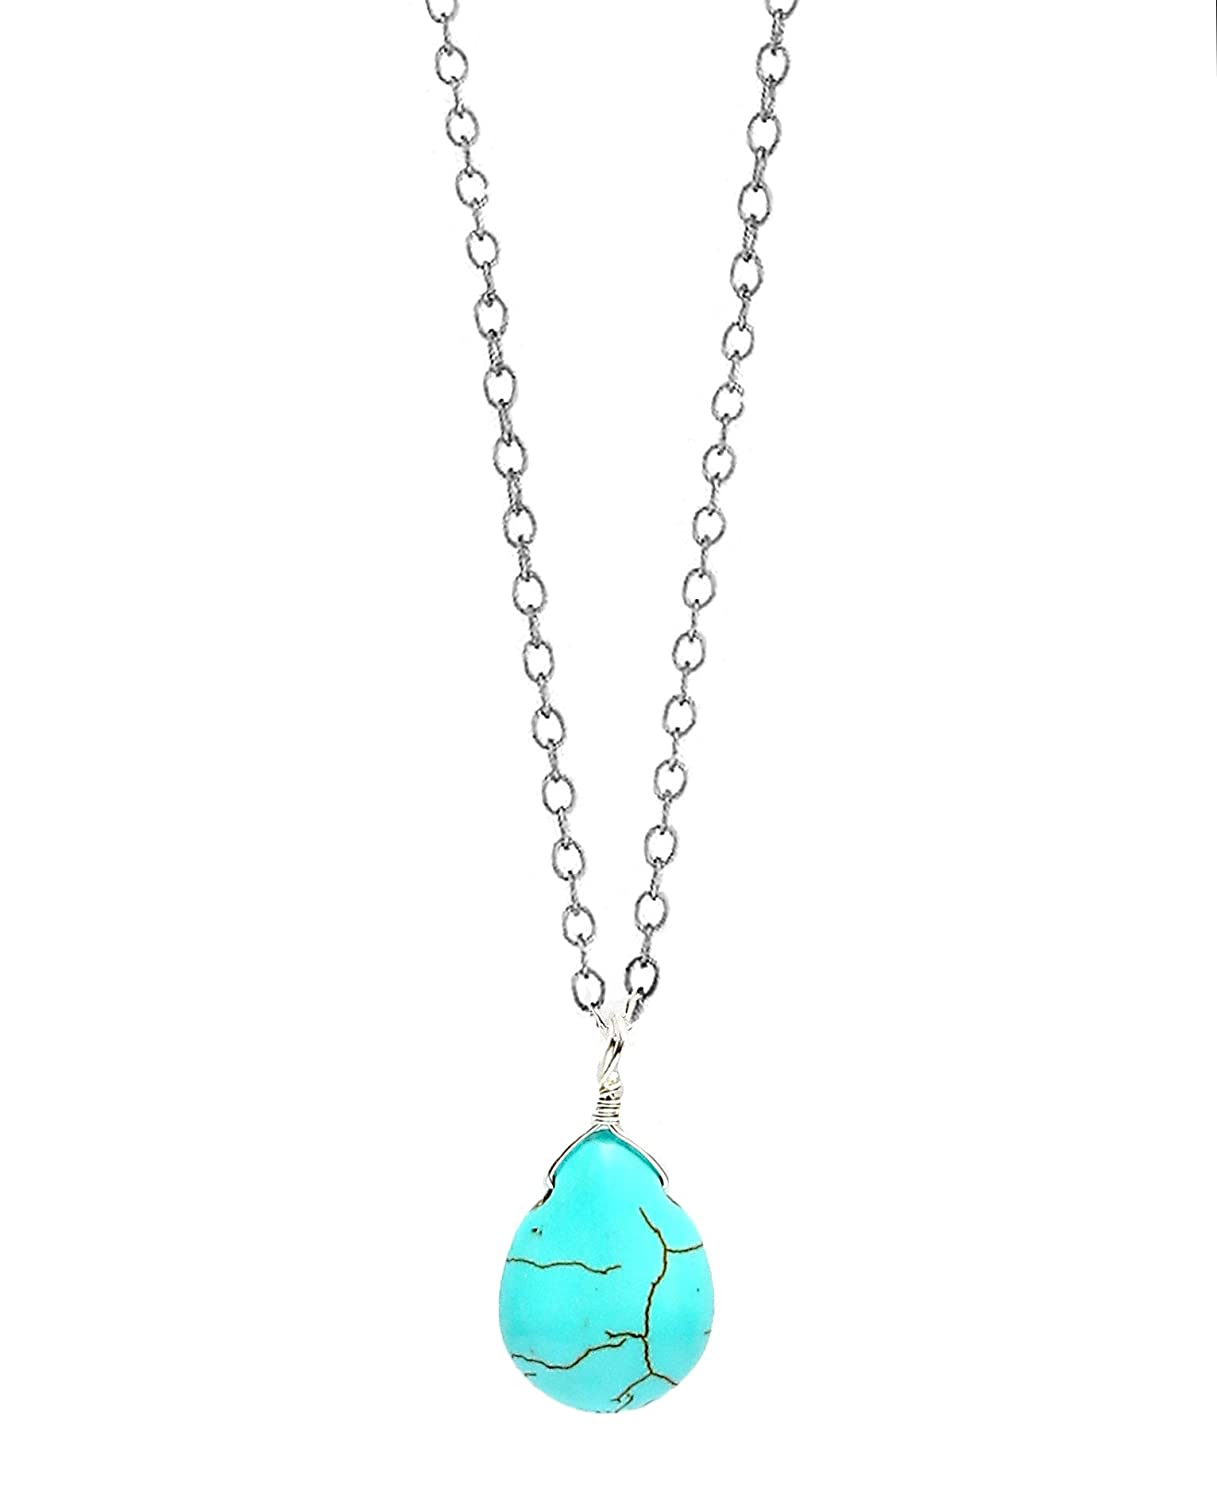 7d7a2b210614 Amazon.com: Michelle Smith Collection Sterling Silver Turquoise Teardrop  Pendant Necklace 16